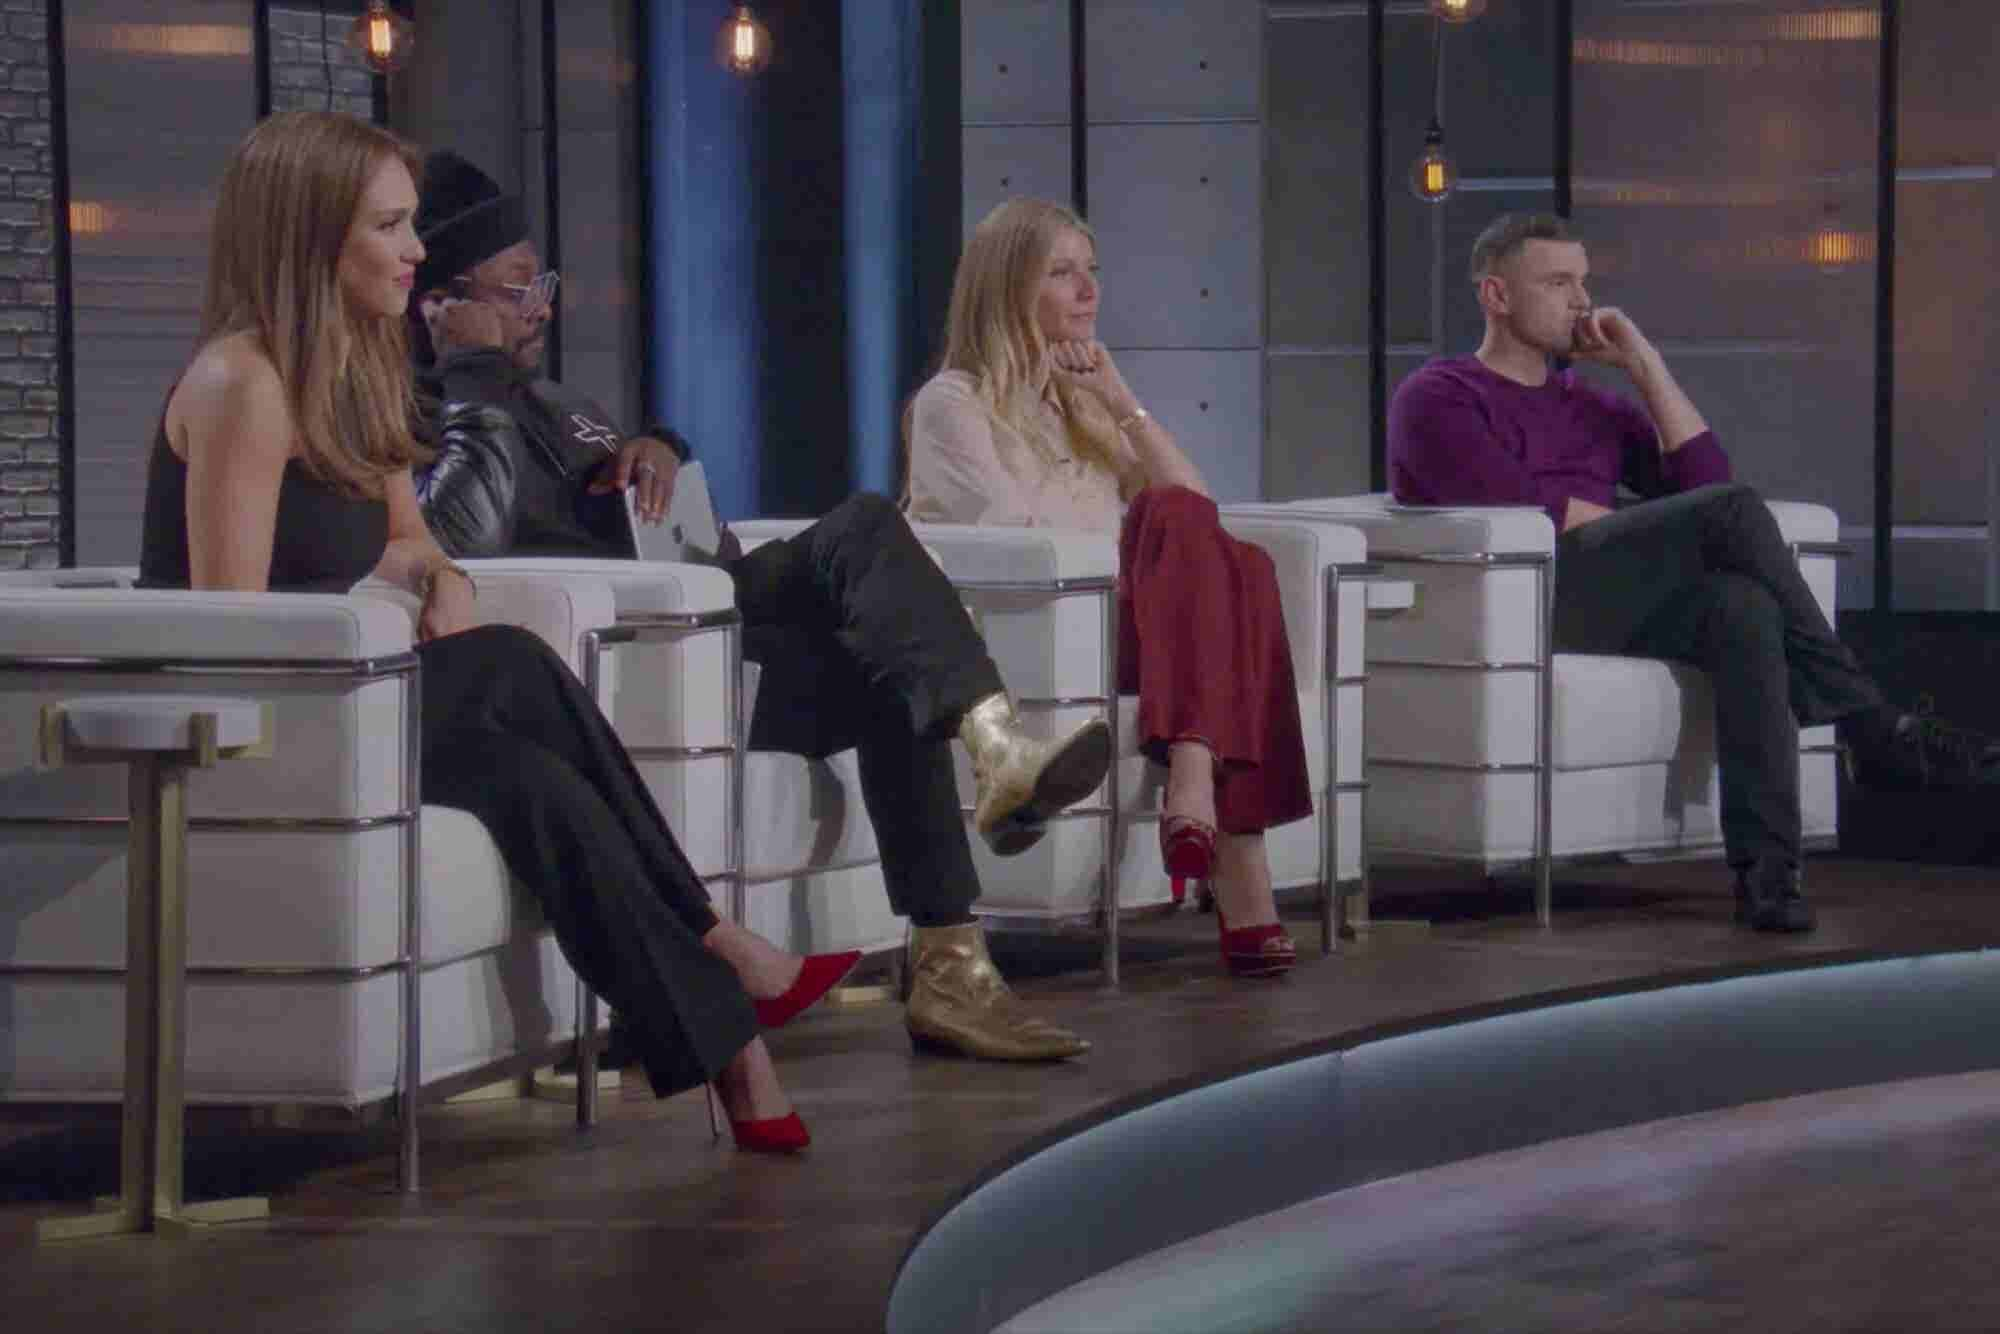 Apple Presents a Pretty Good Take on 'Shark Tank' With Its First Foray Into TV